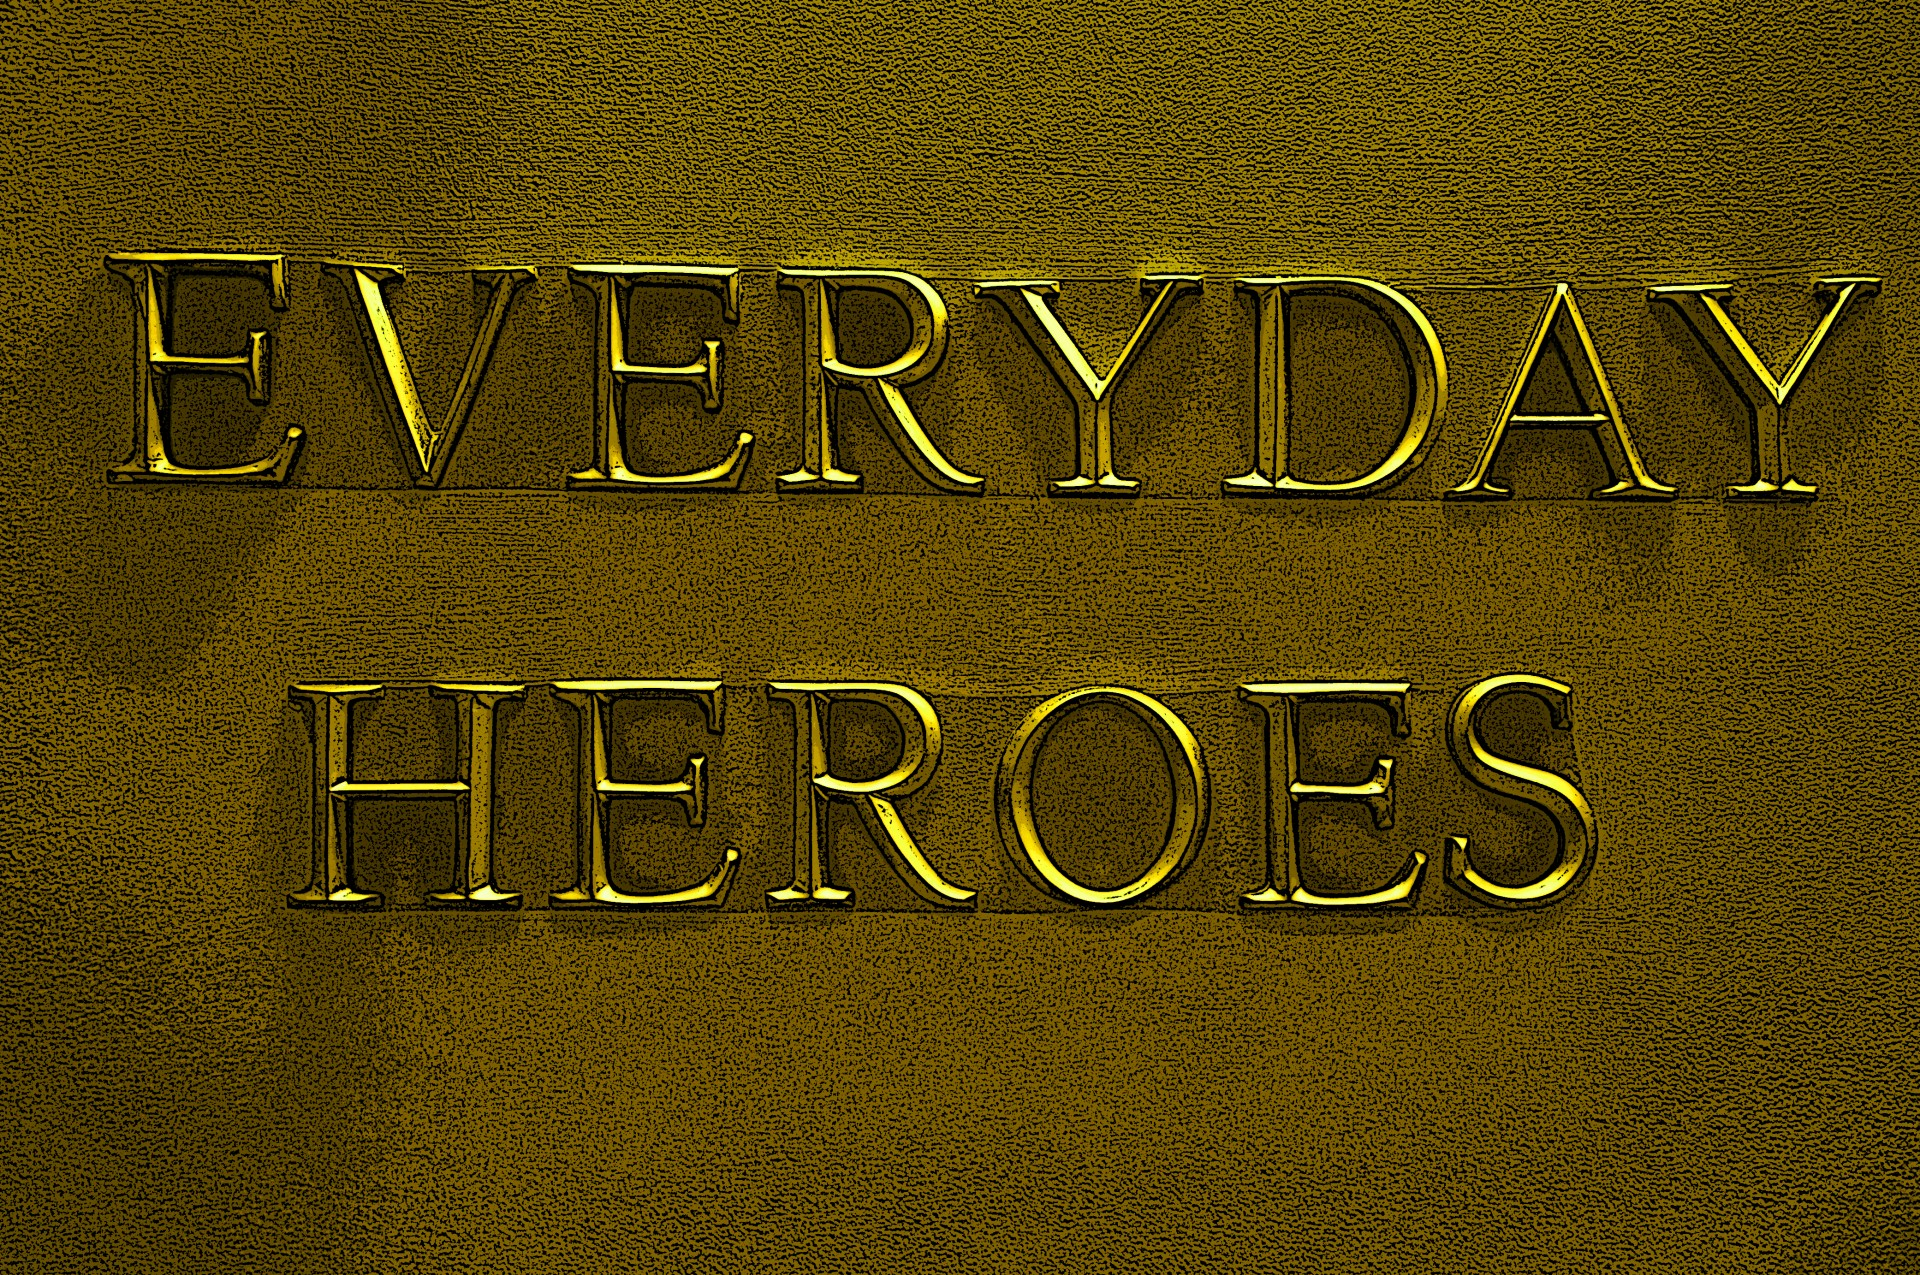 everyday-heroes-sign